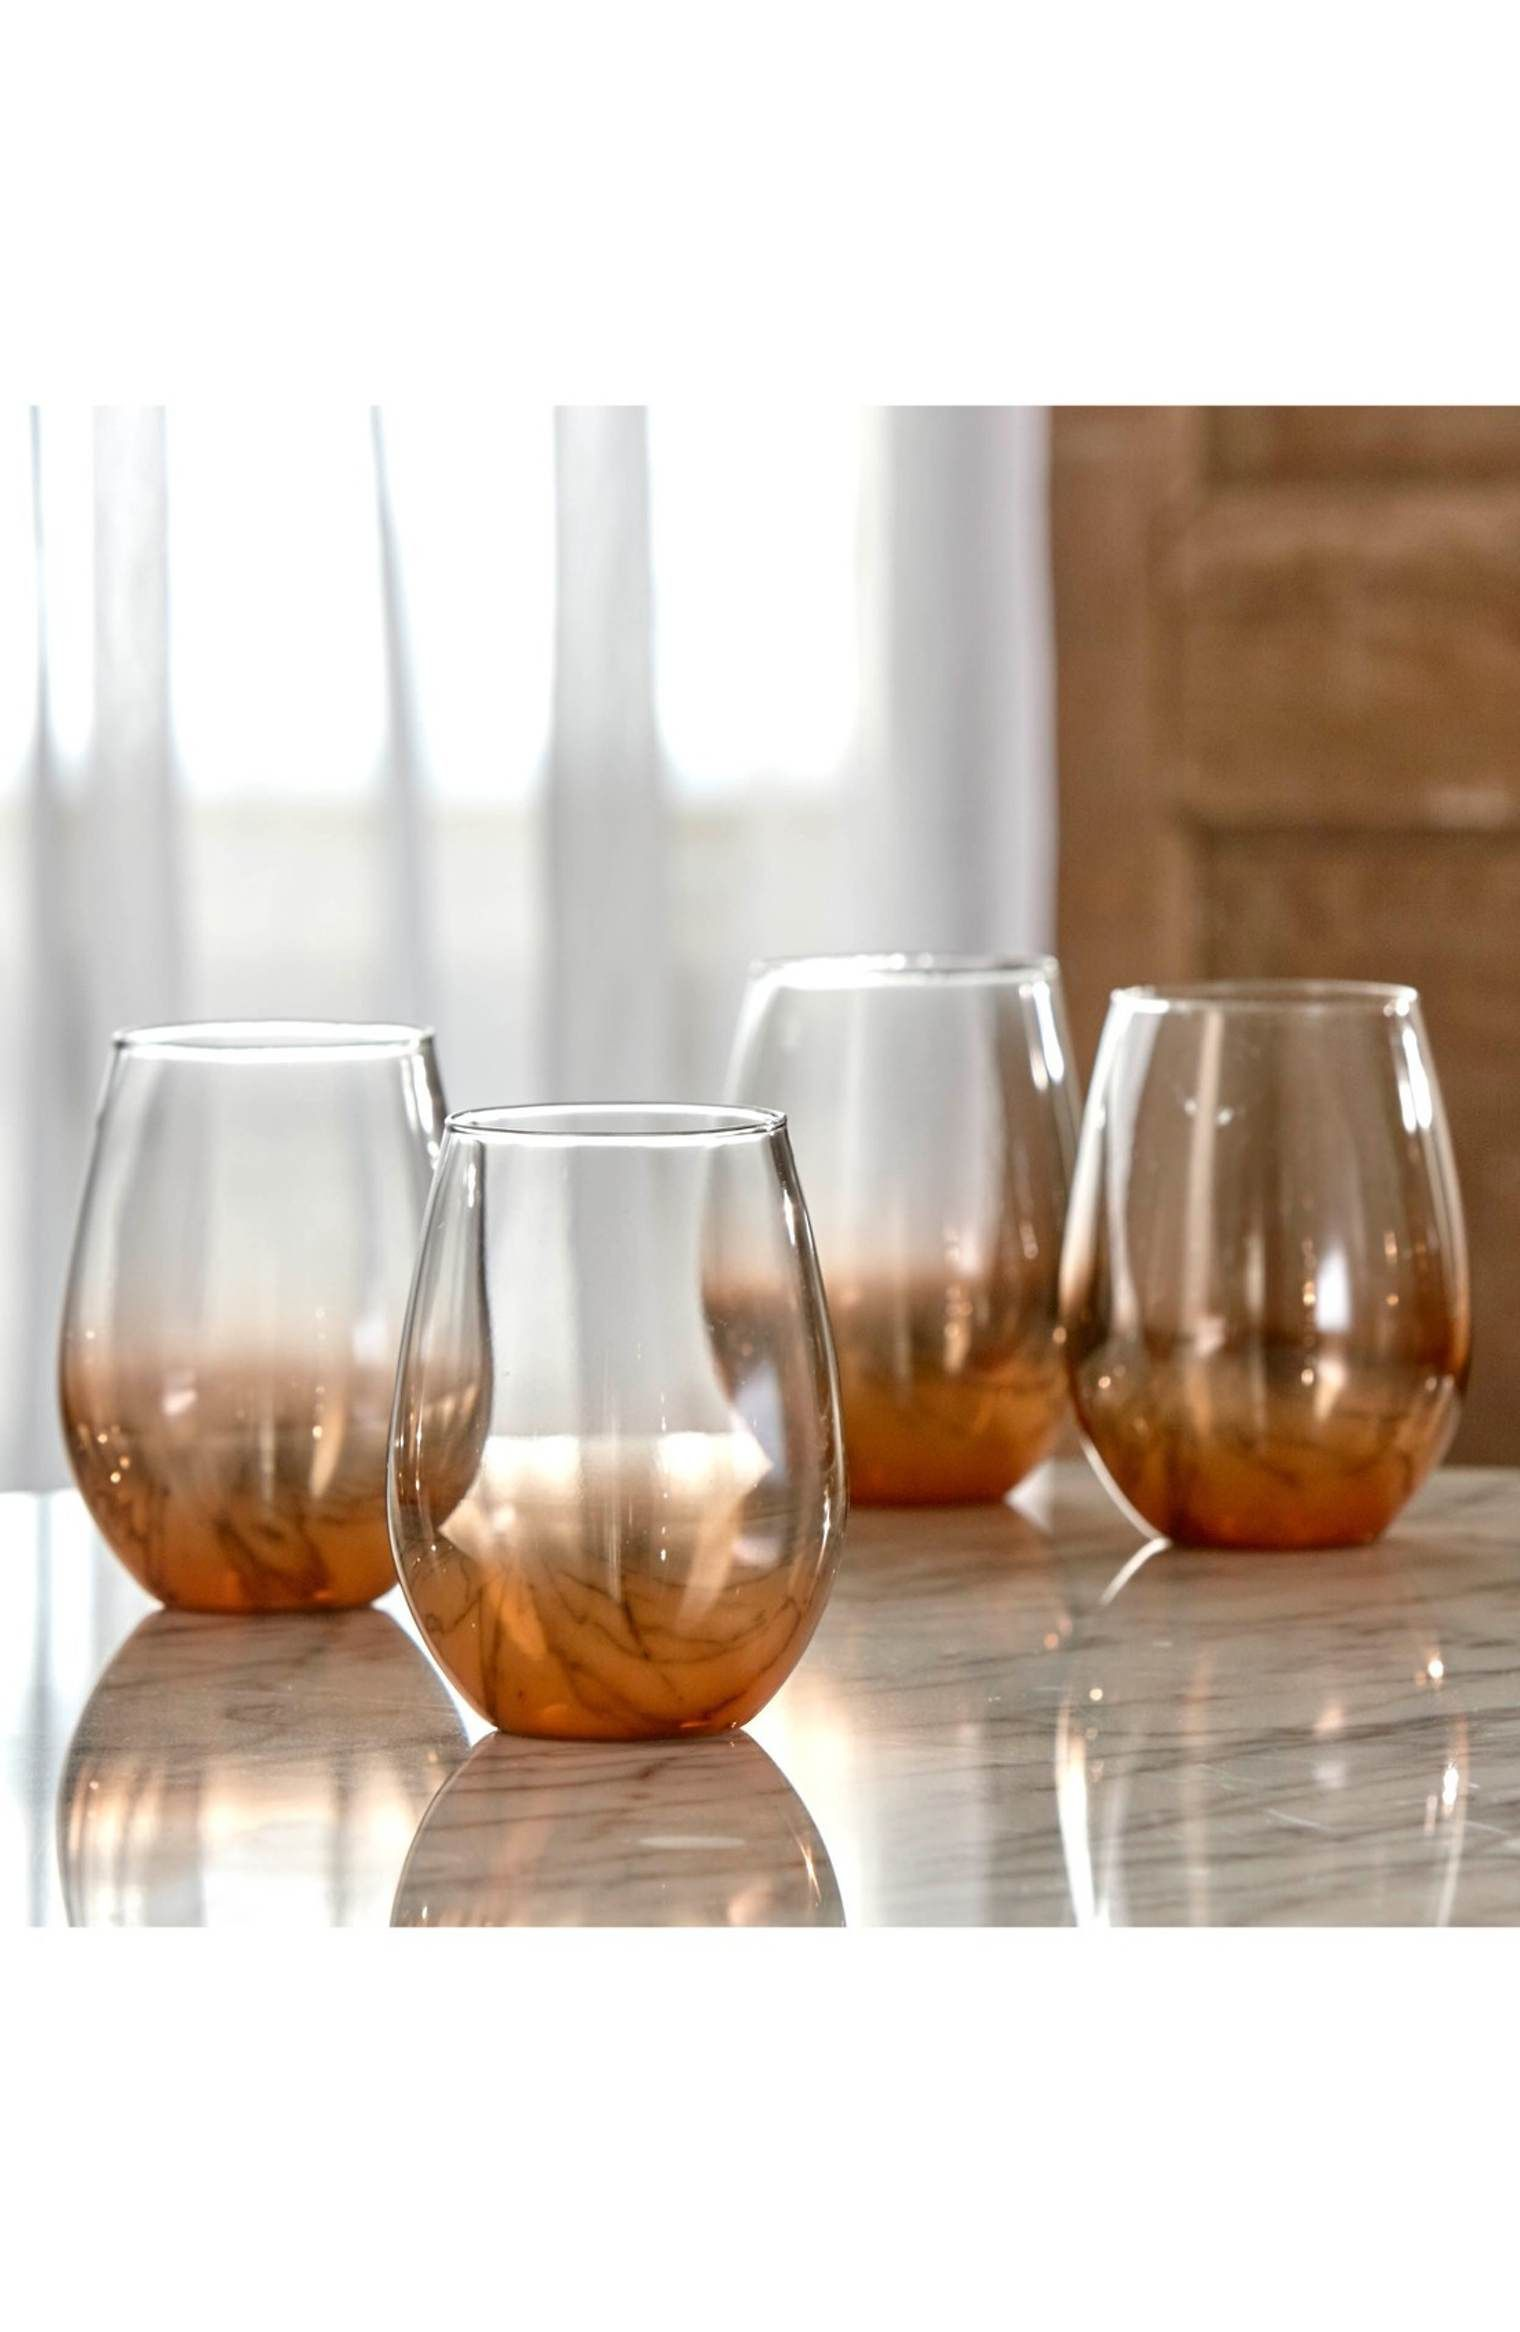 c5c5fe36be2 Main Image - American Atelier Ombré Stemless Wine Glass | Wine and ...